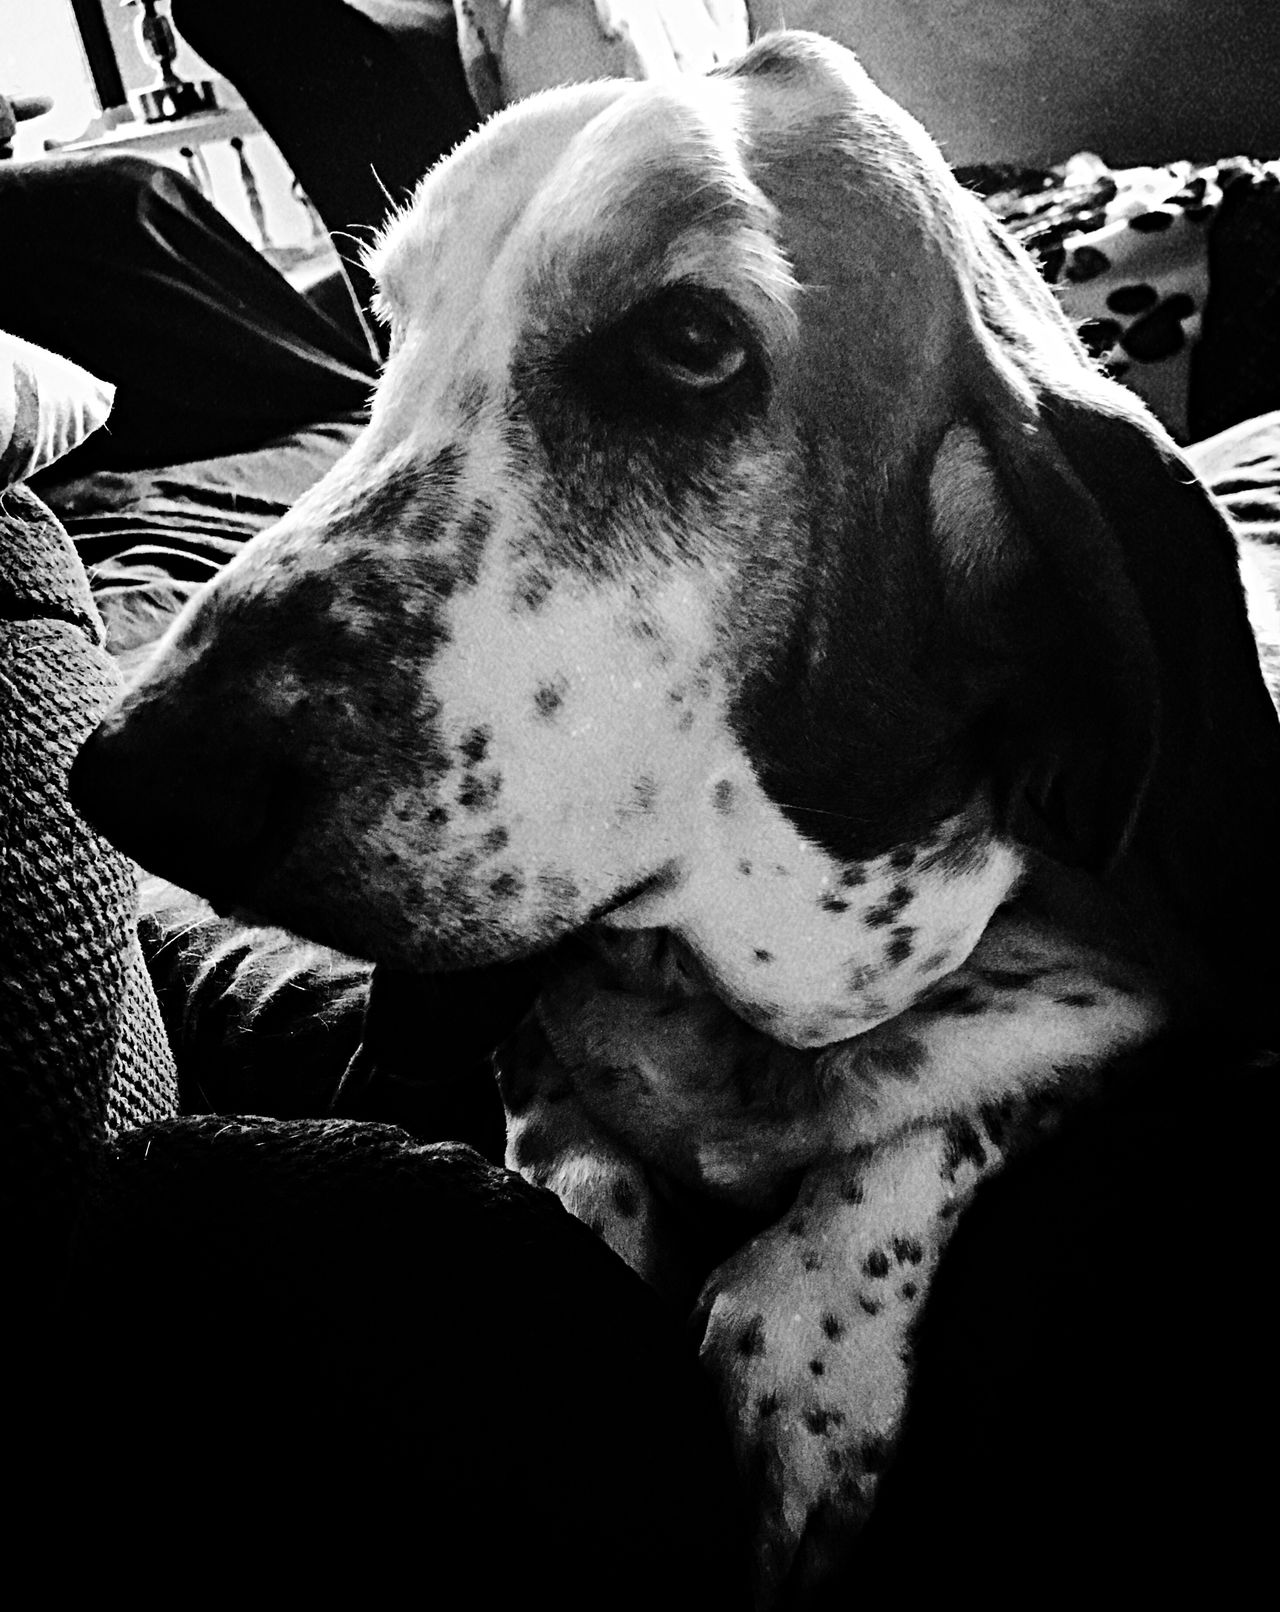 William the poser Profile Picture Blackandwhite Photography Pets Dog Indoors  Close-up IPhone Photography Bassetmoments Bassethoundadventures Iphonephotography Bassethoundsare Best Ilovemybassethounds Portrait Upclose And Personal